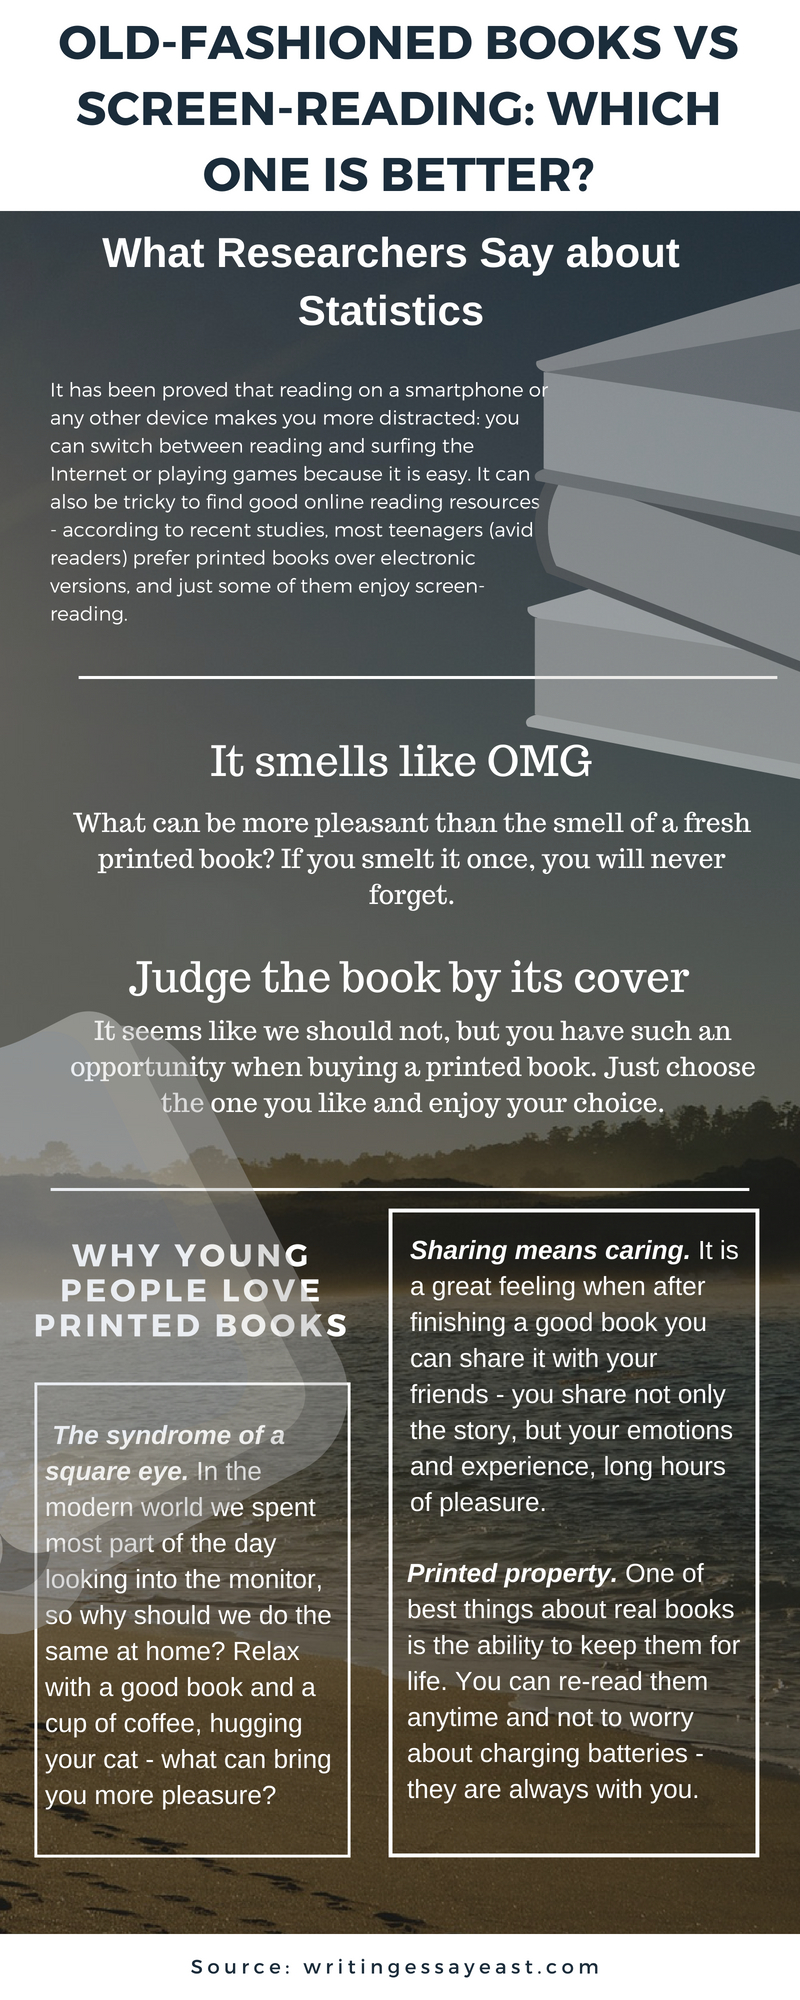 Old-Fashioned Books vs Screen-Reading: Which One Is Better?